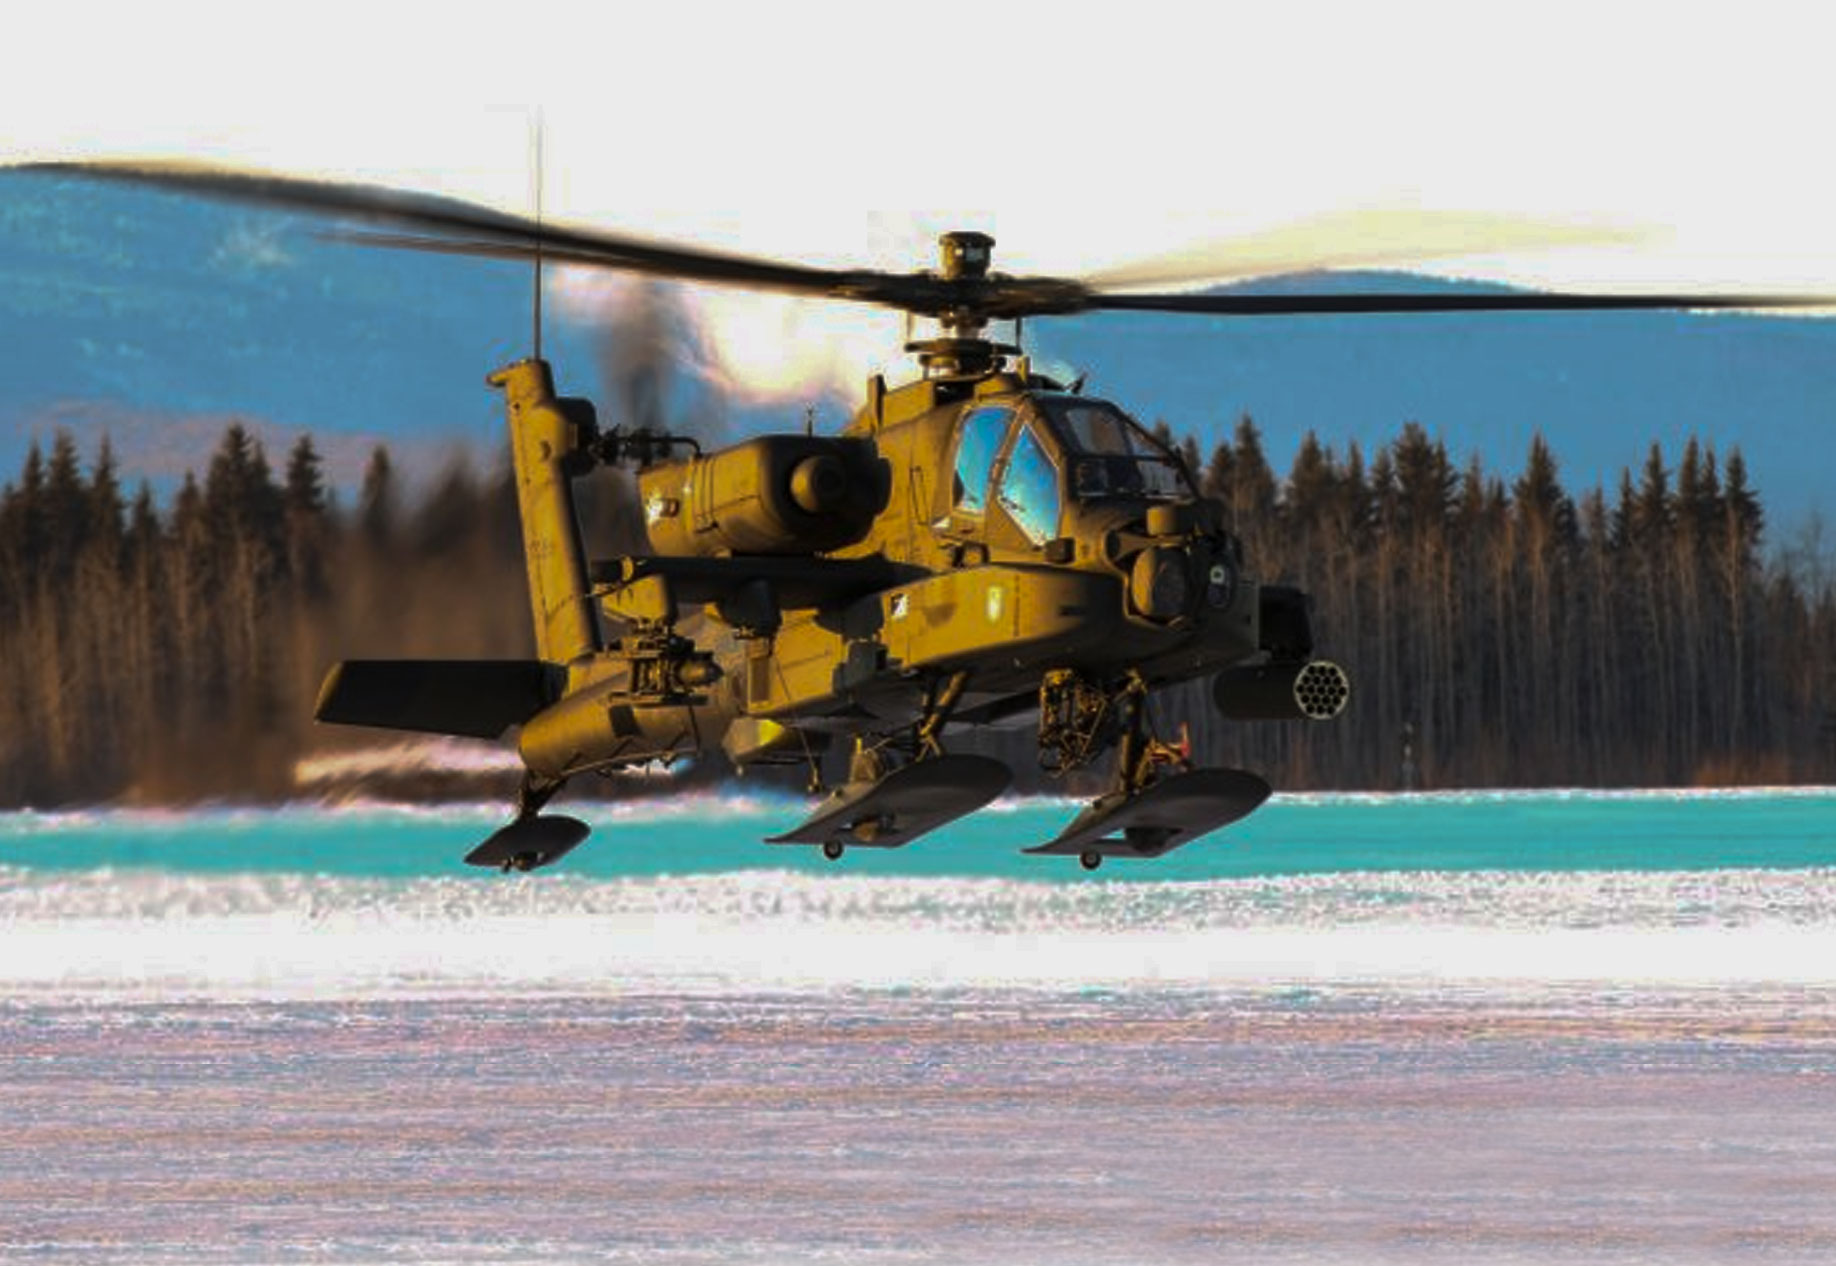 Powerful Images Of The AH-64 Apache Attack Helicopter